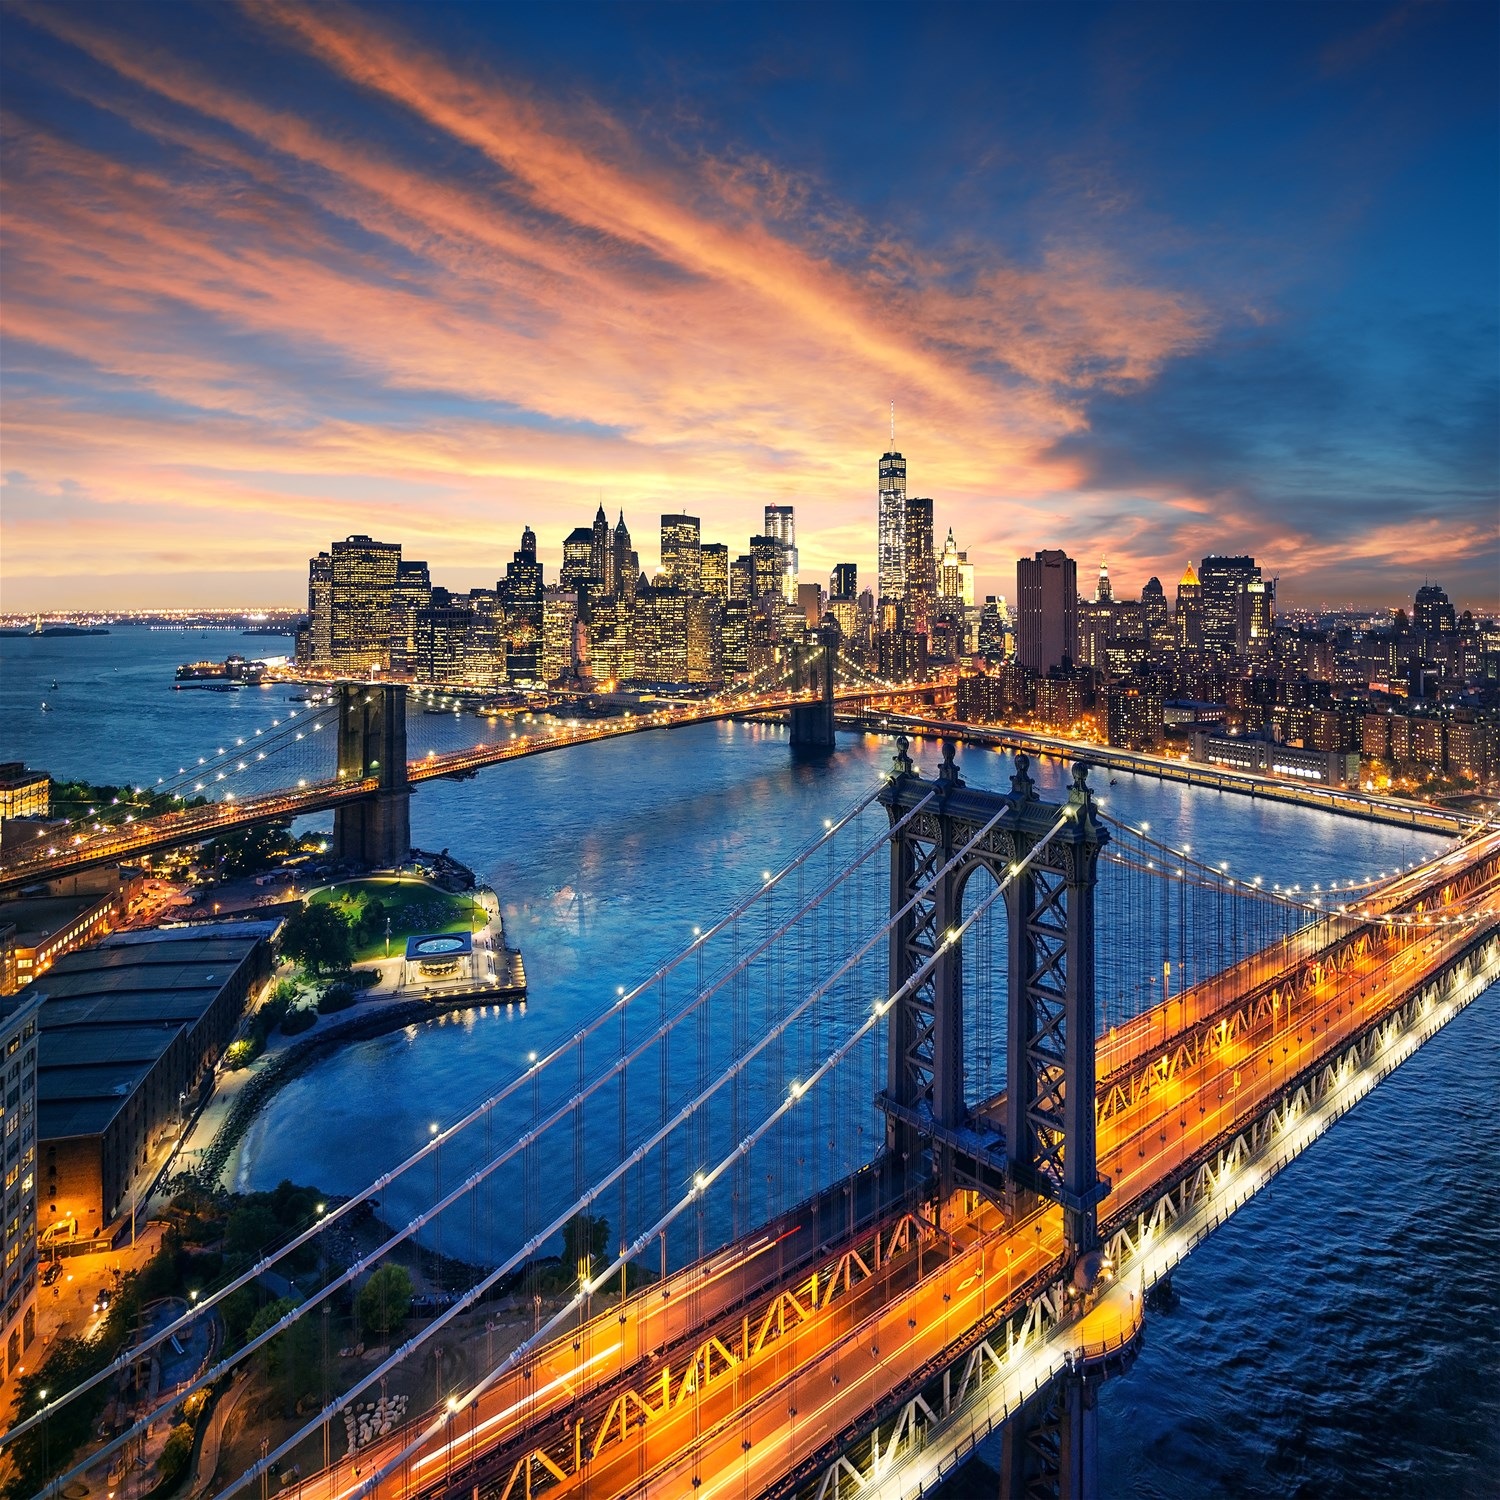 Things to Do in New York - From Well-Trodden Attractions to Hidden Gems